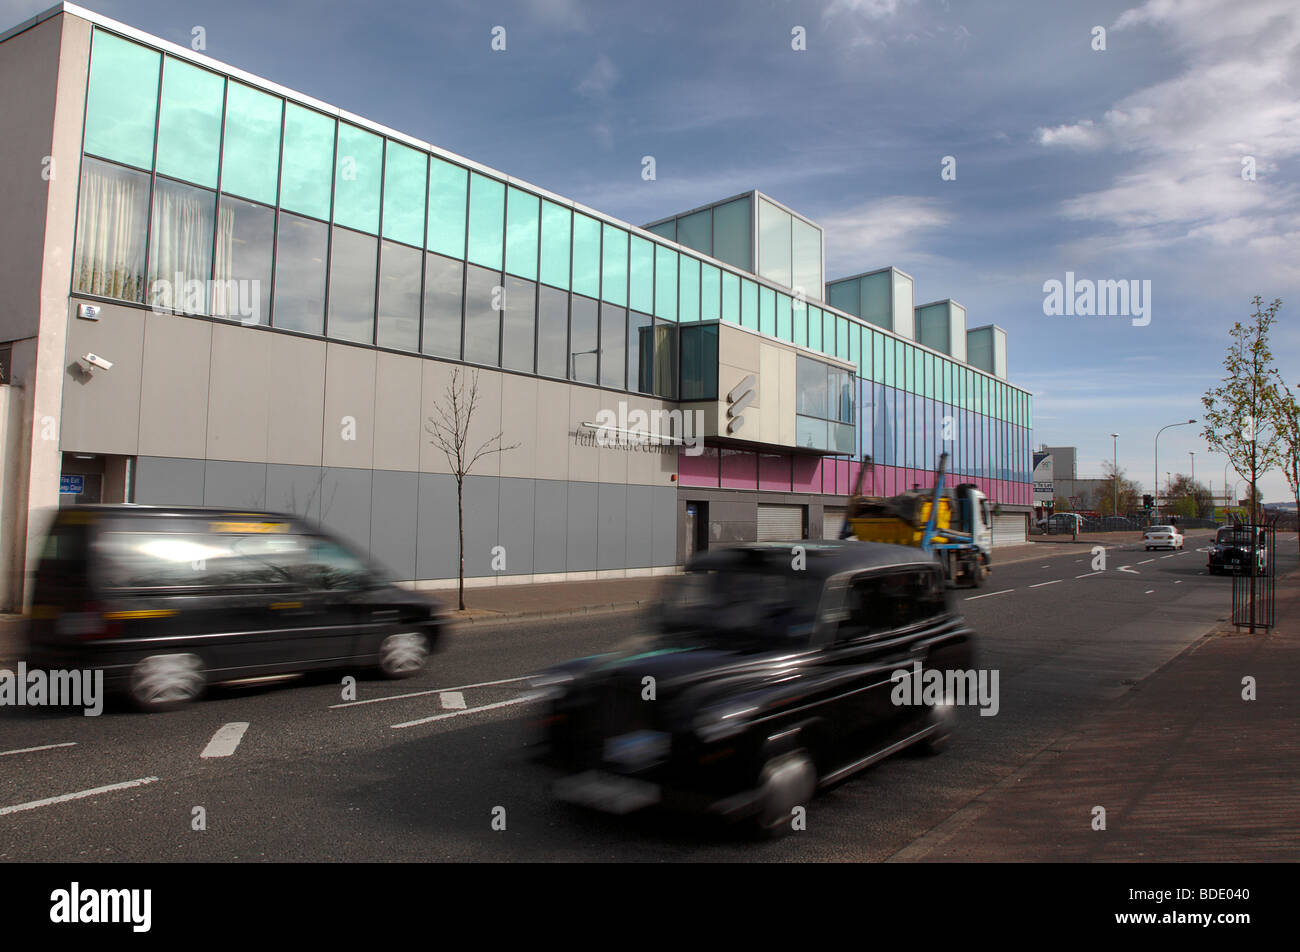 IRELAND, North, Belfast, West, Falls Road, Exterior of the refurbished Falls Swimming Baths with black taxi cabs - Stock Image